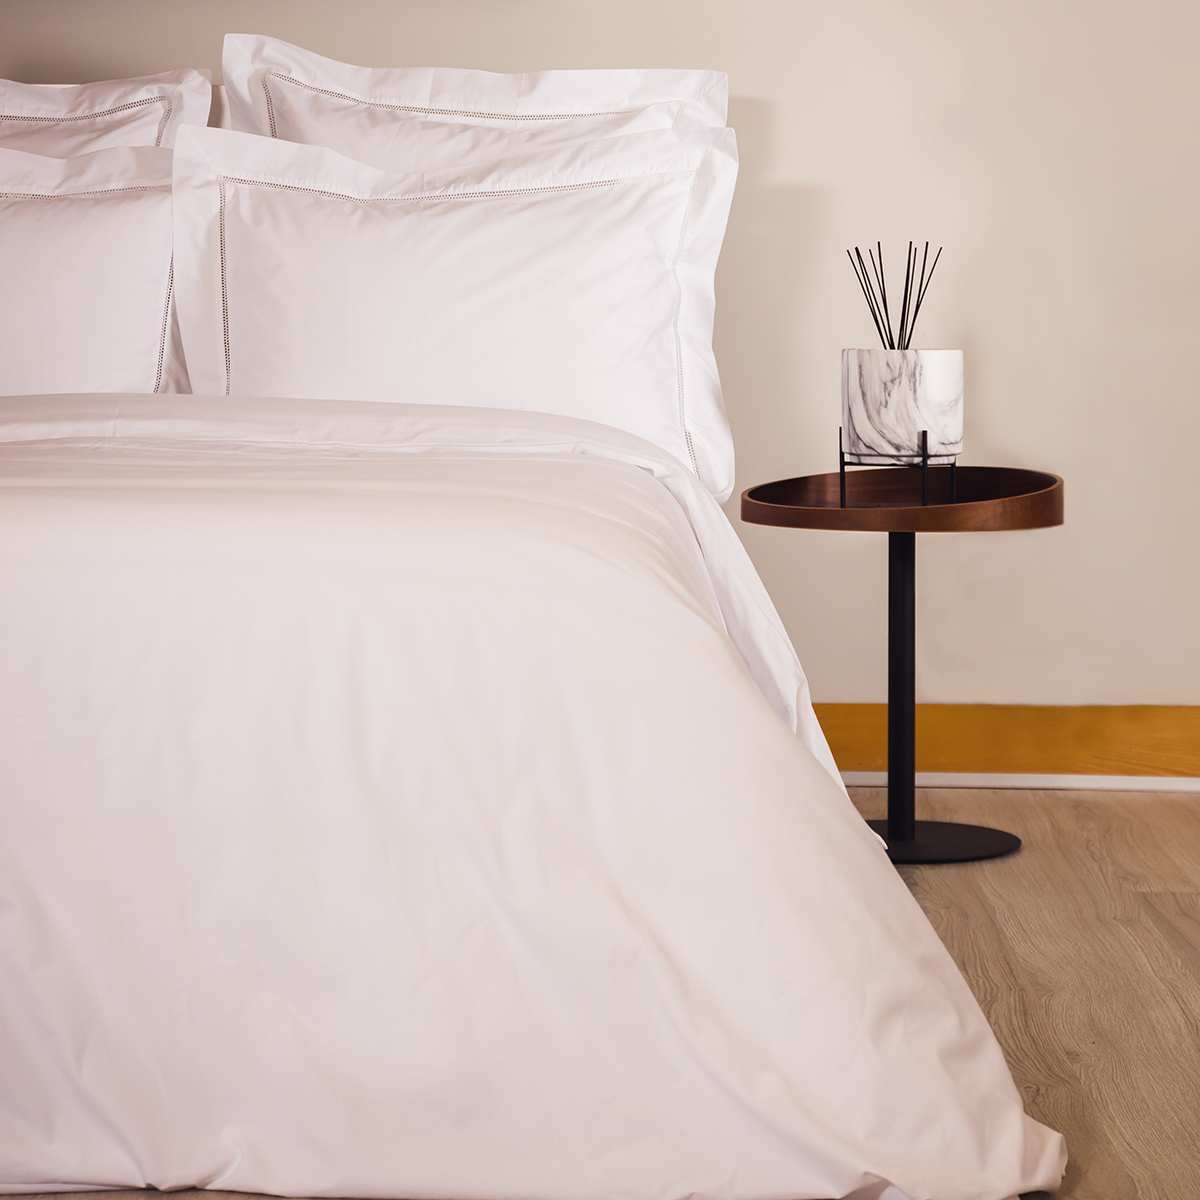 linge de lit percale 160 fils la compagnie du blanc. Black Bedroom Furniture Sets. Home Design Ideas